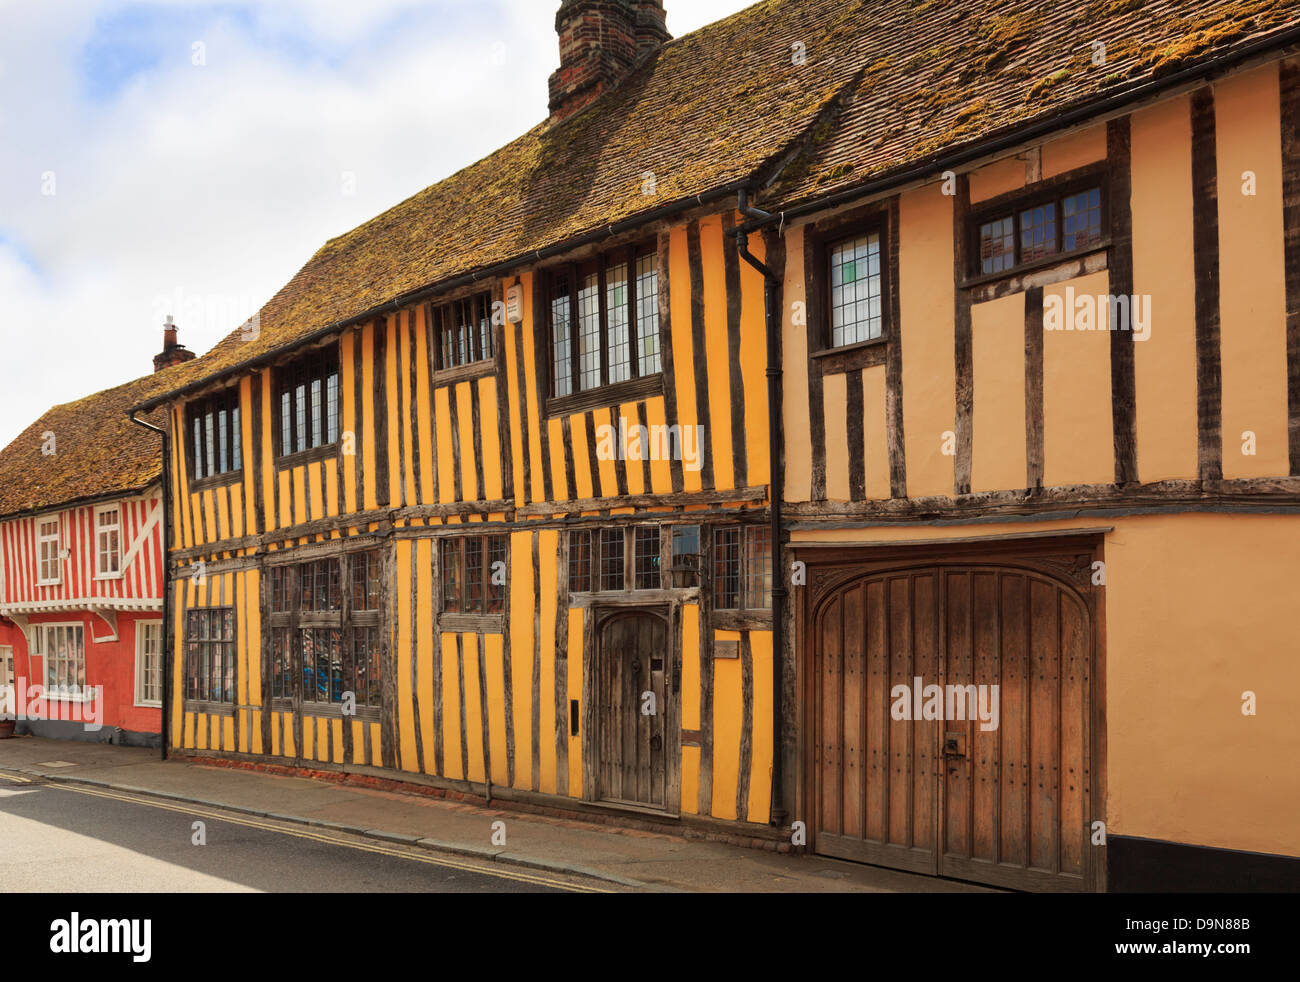 The Manor timbered Tudor building in medieval village of Lavenham, Suffolk, England, UK, Britain - Stock Image